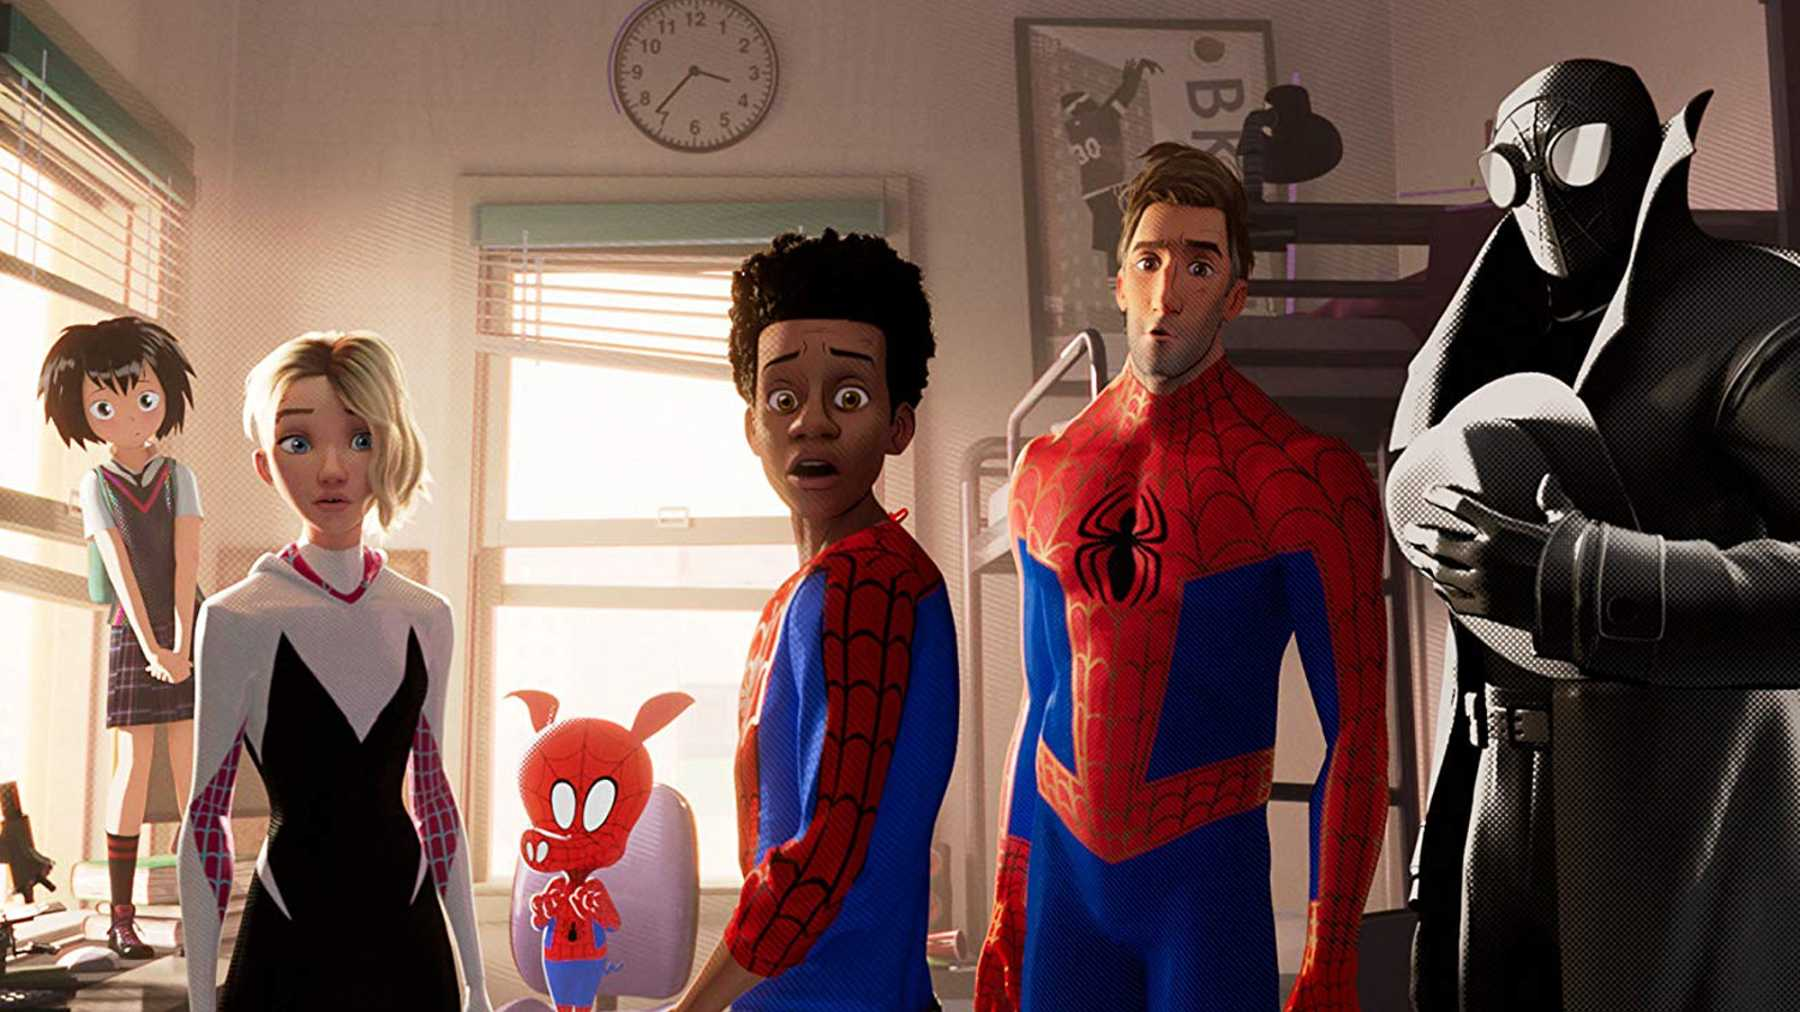 Characters of Into the Spiderverse